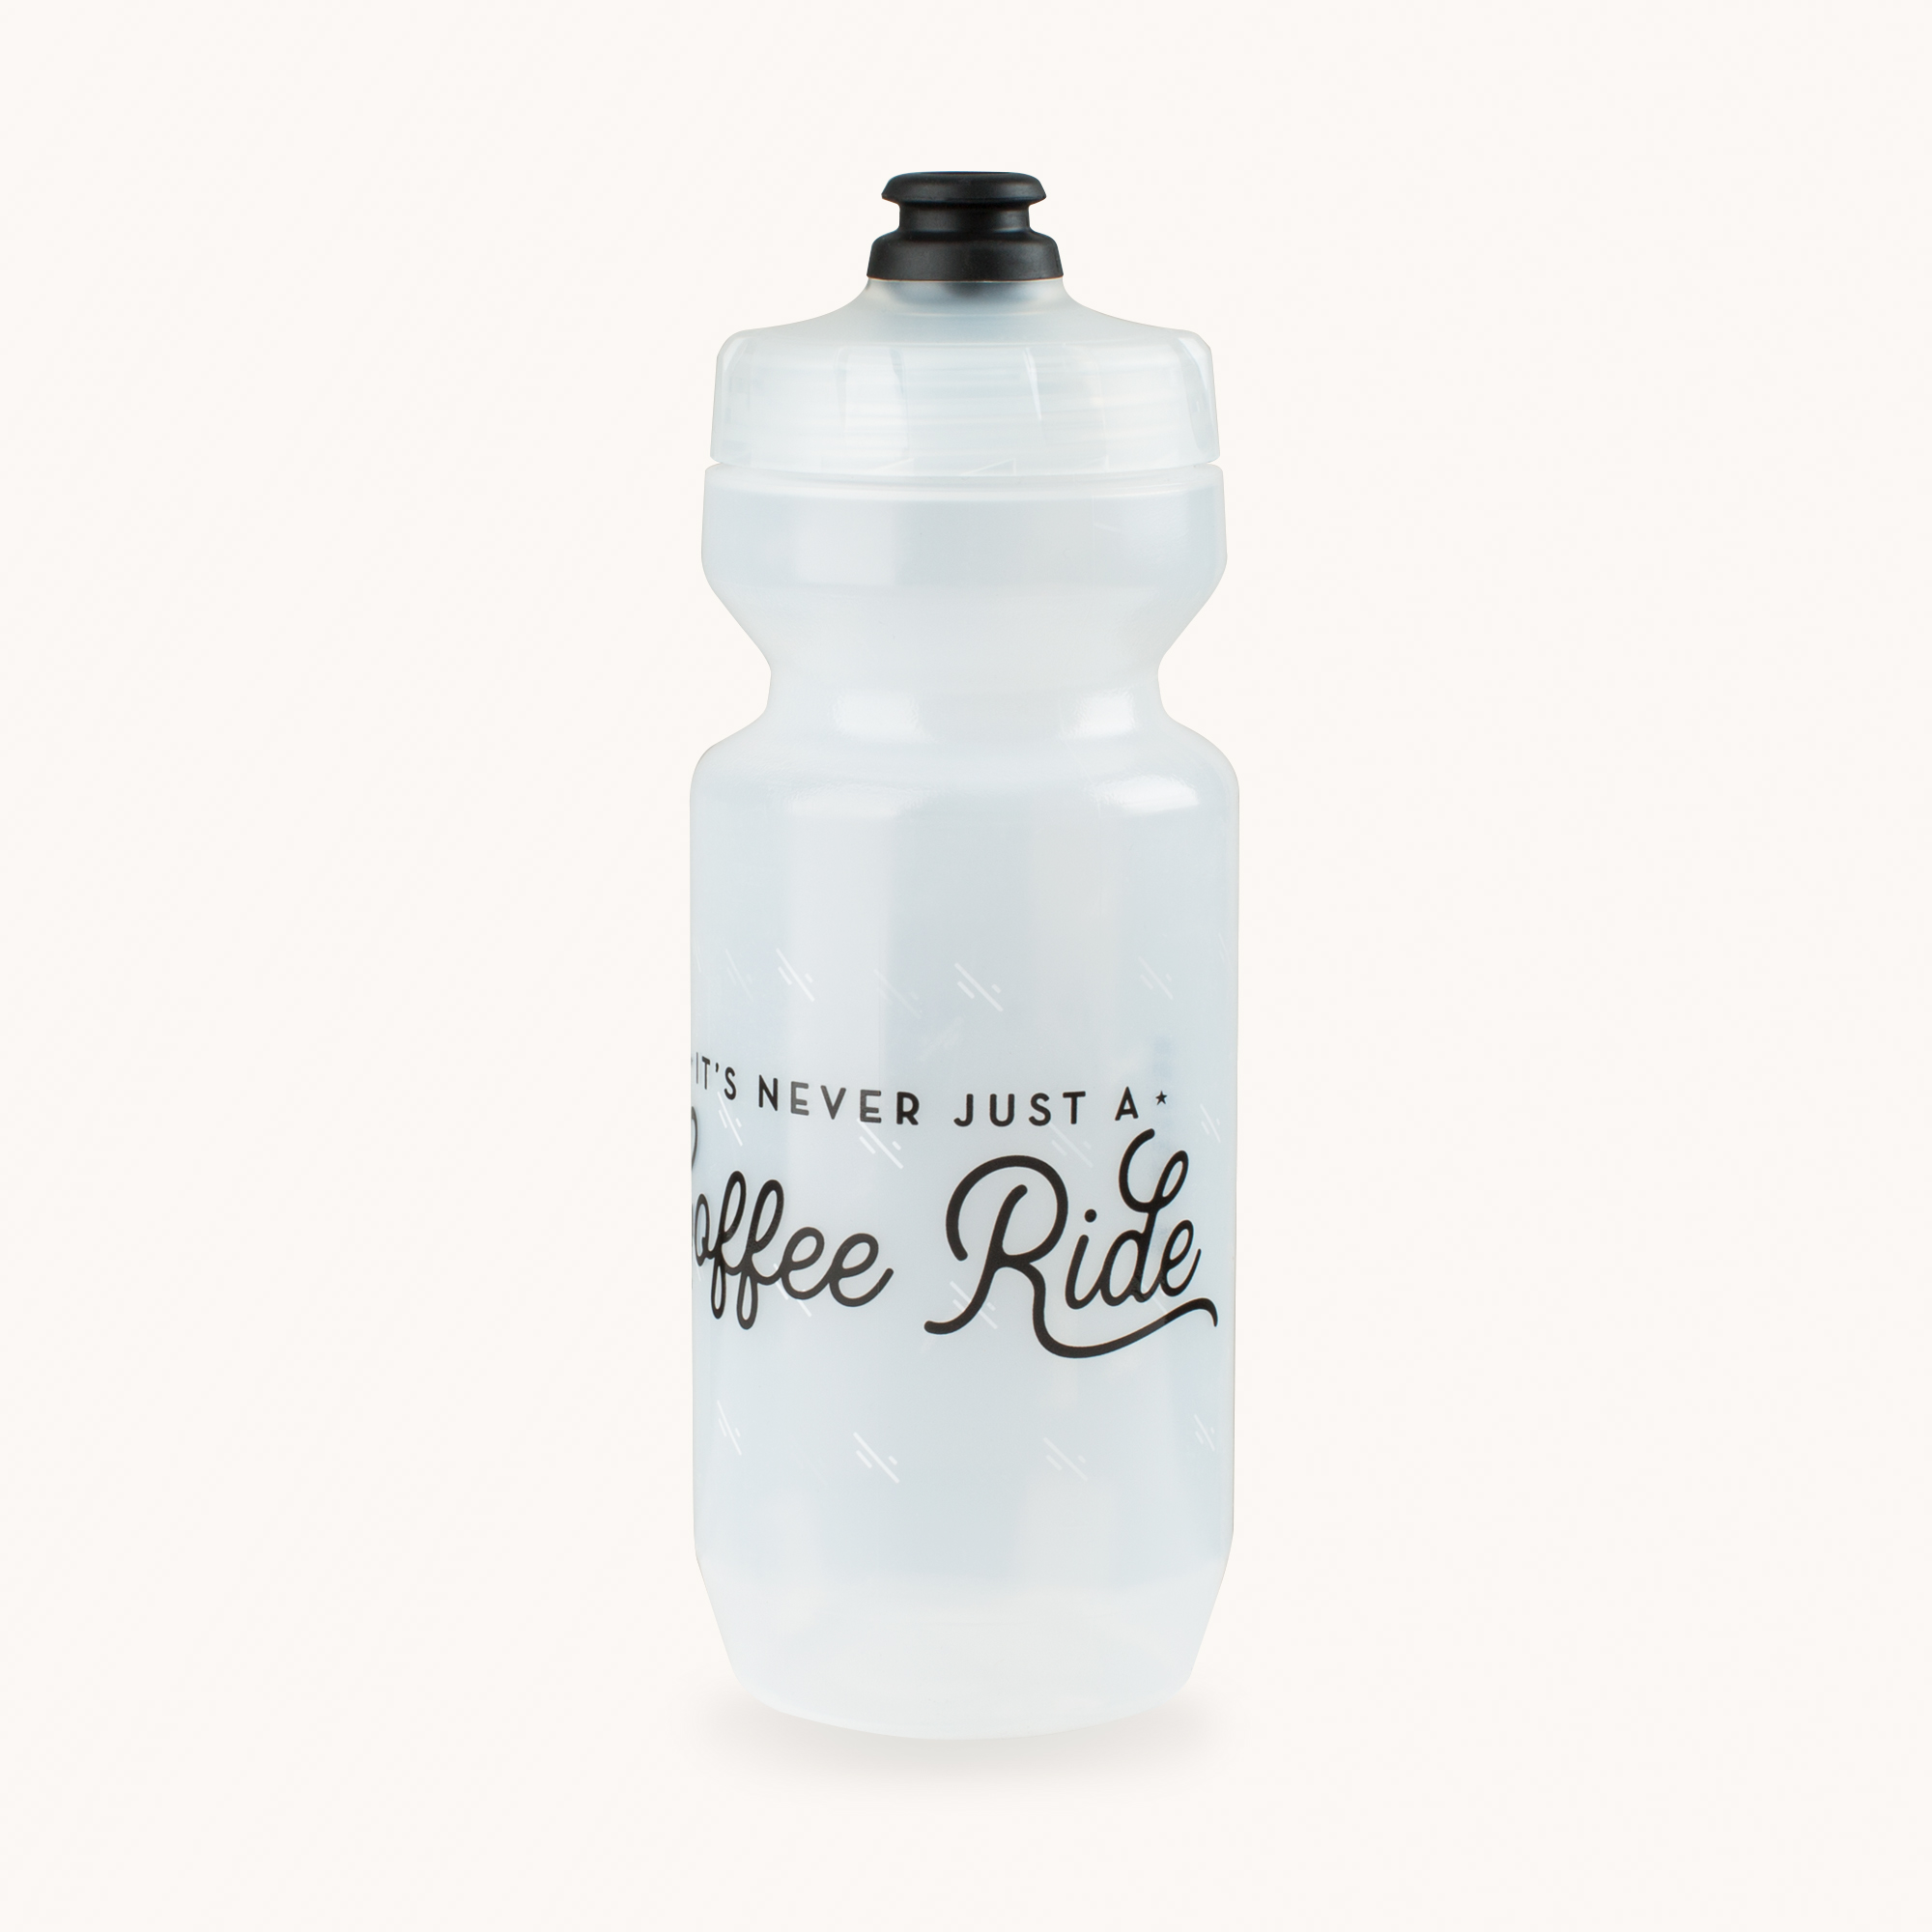 2019_LostDogCycling_WaterBottle_CoffeeRide_StudioPhotos_001.jpg